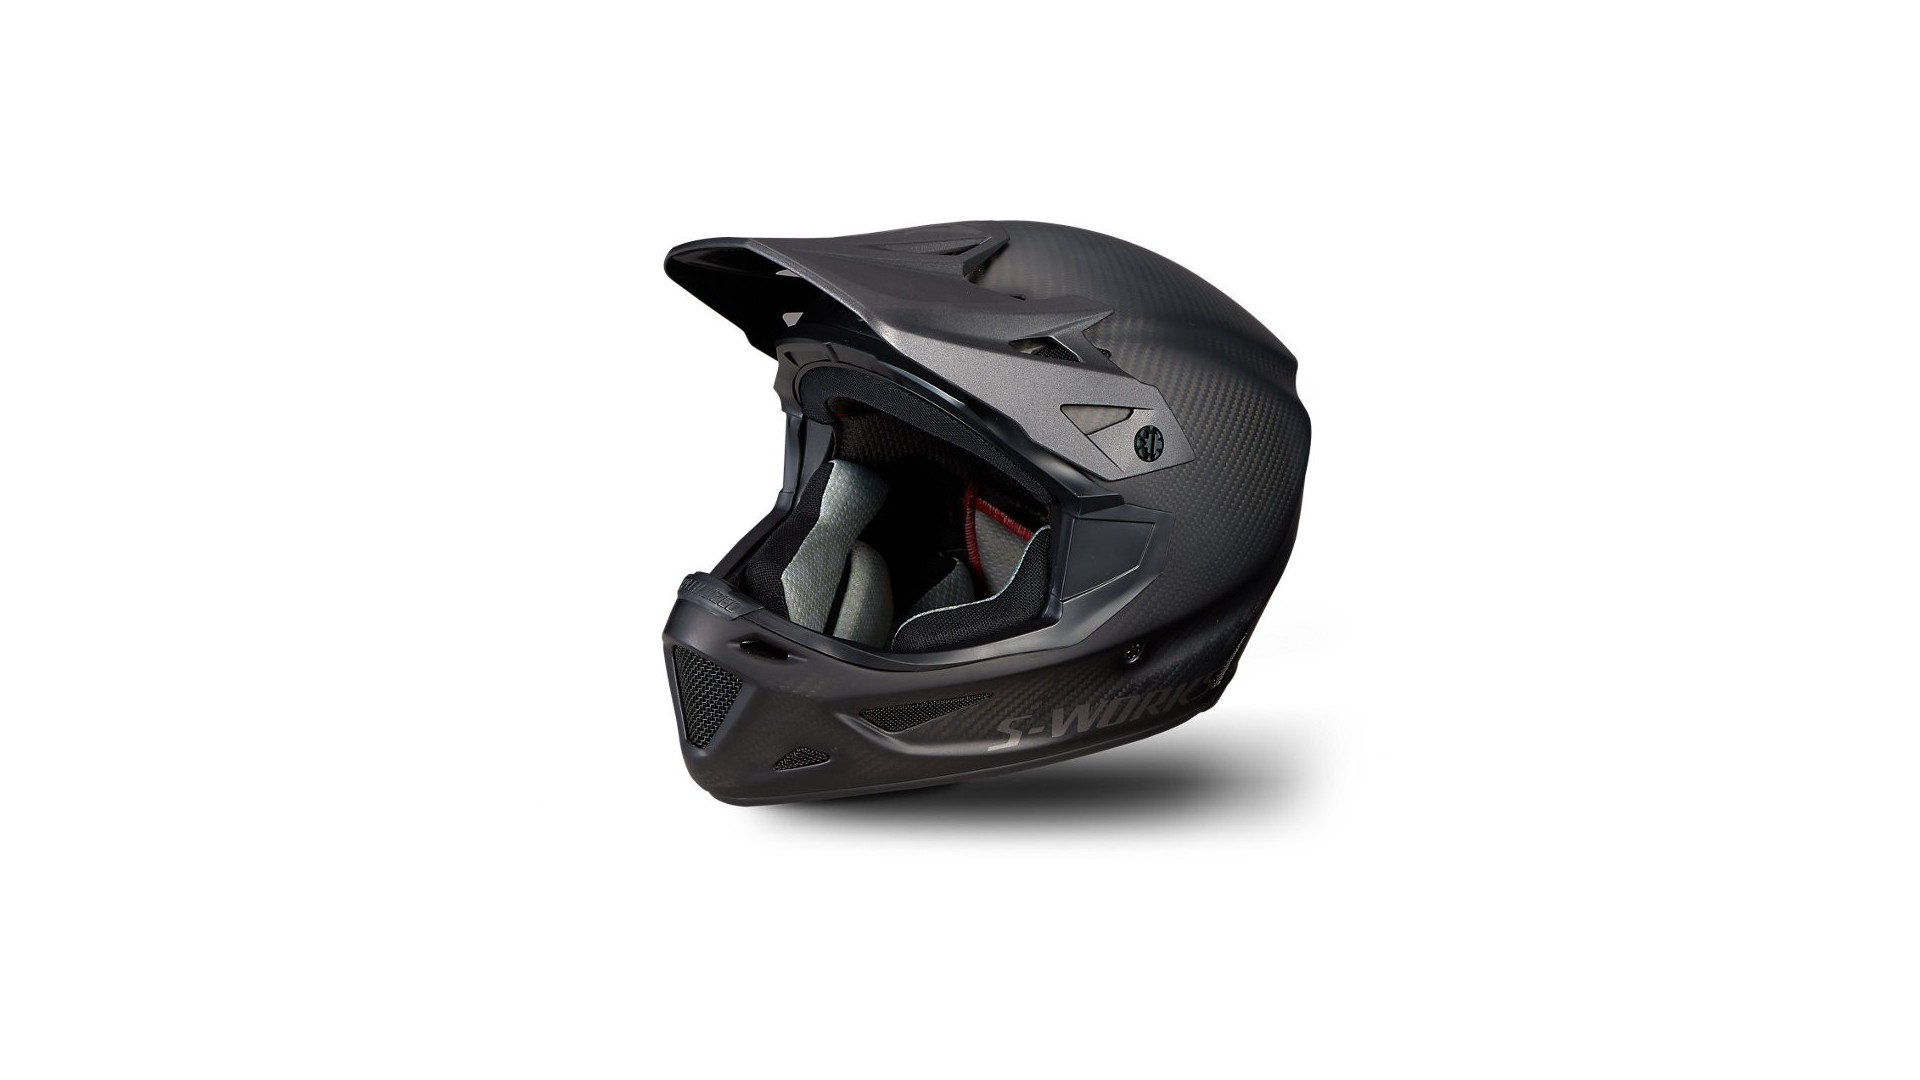 S-Works Dissident DH Casco Integral Specialized Angi Mips Matte Raw Carbon 1 IBKBike.es